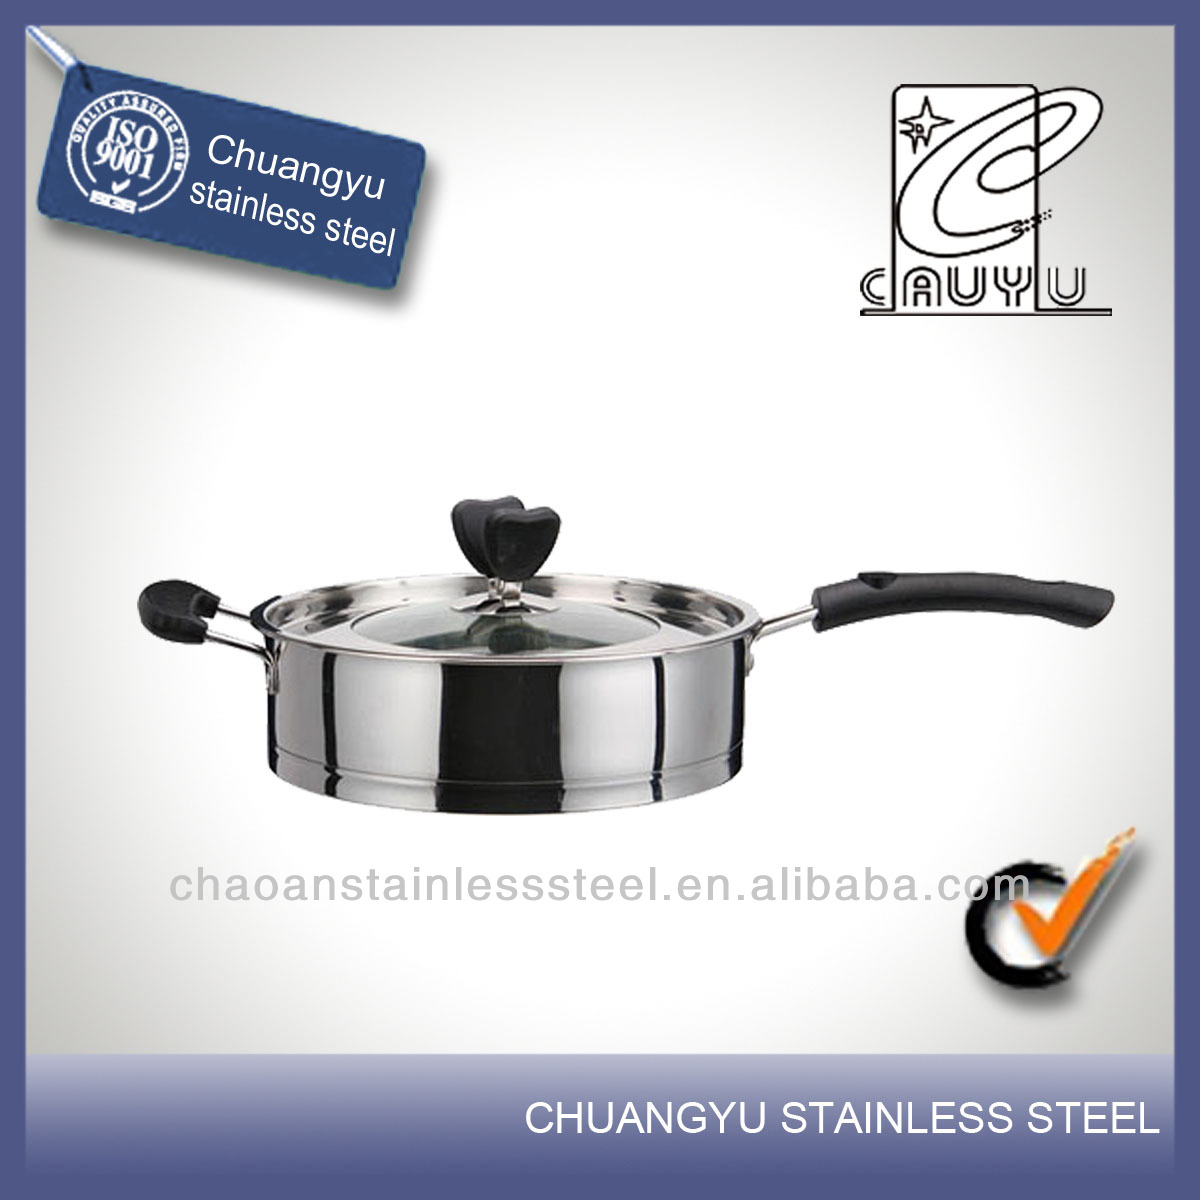 New product stainless steel non stick ceramic fry pan